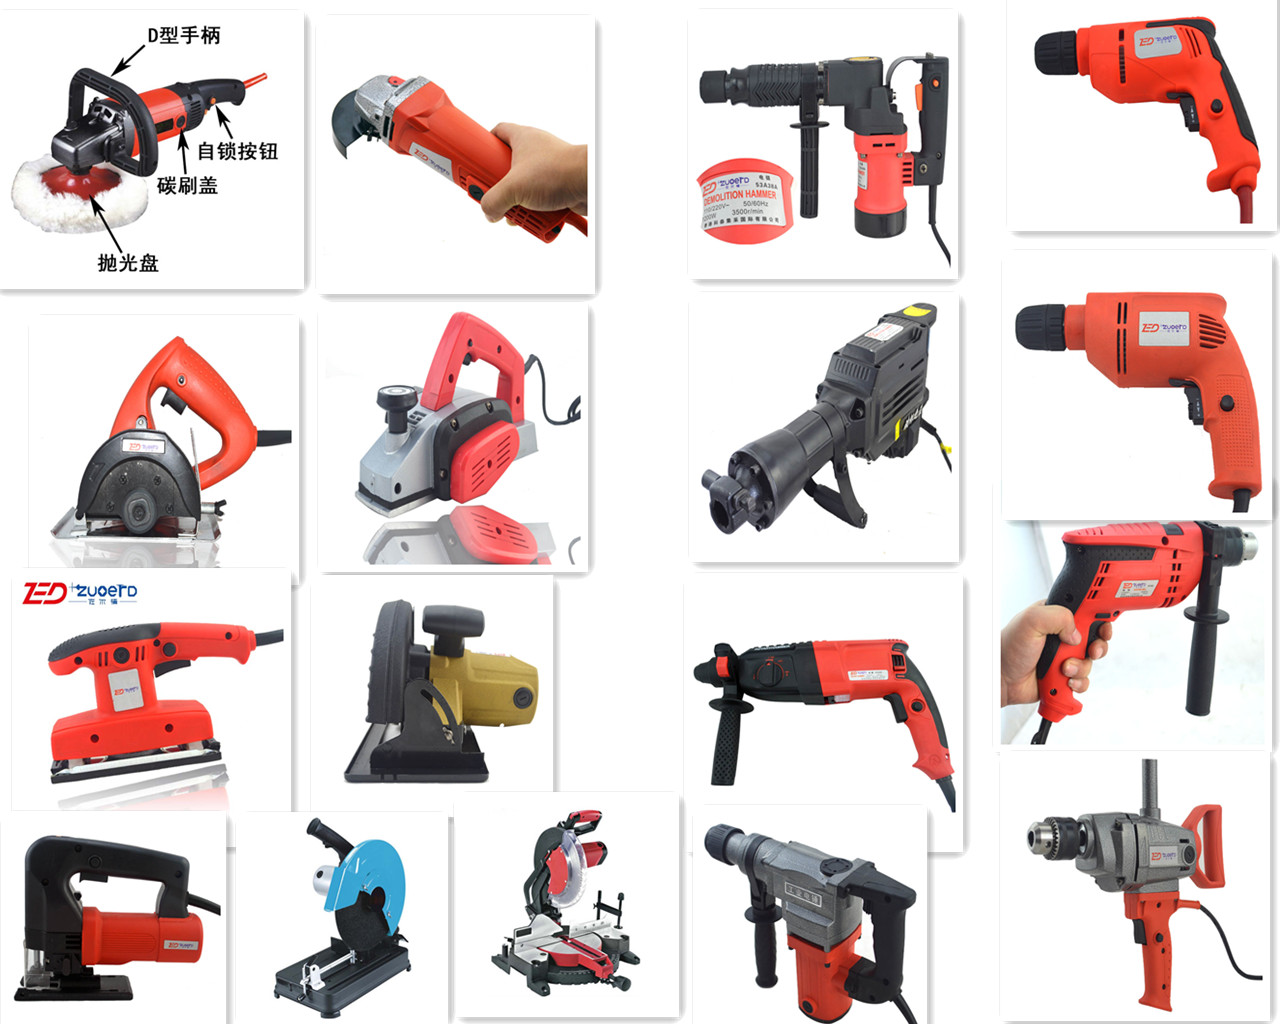 hand tools electric power tools professional zuoerd power tools